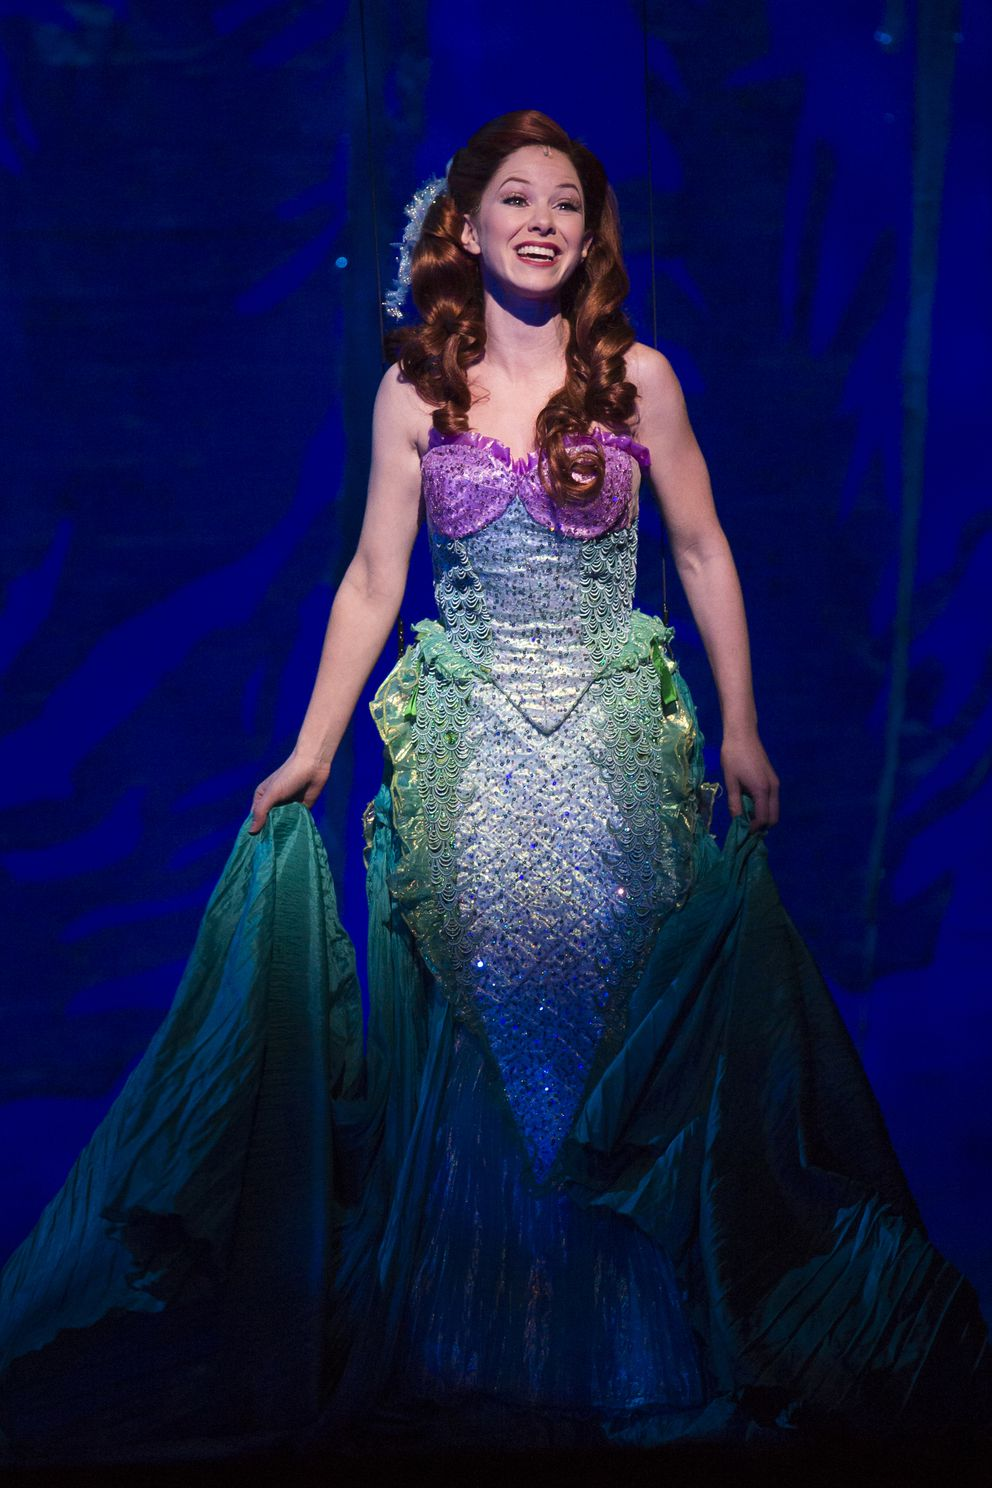 Alison Woods as Ariel (Photo by Bruce Bennett, courtesy of Theatre Under The Stars)